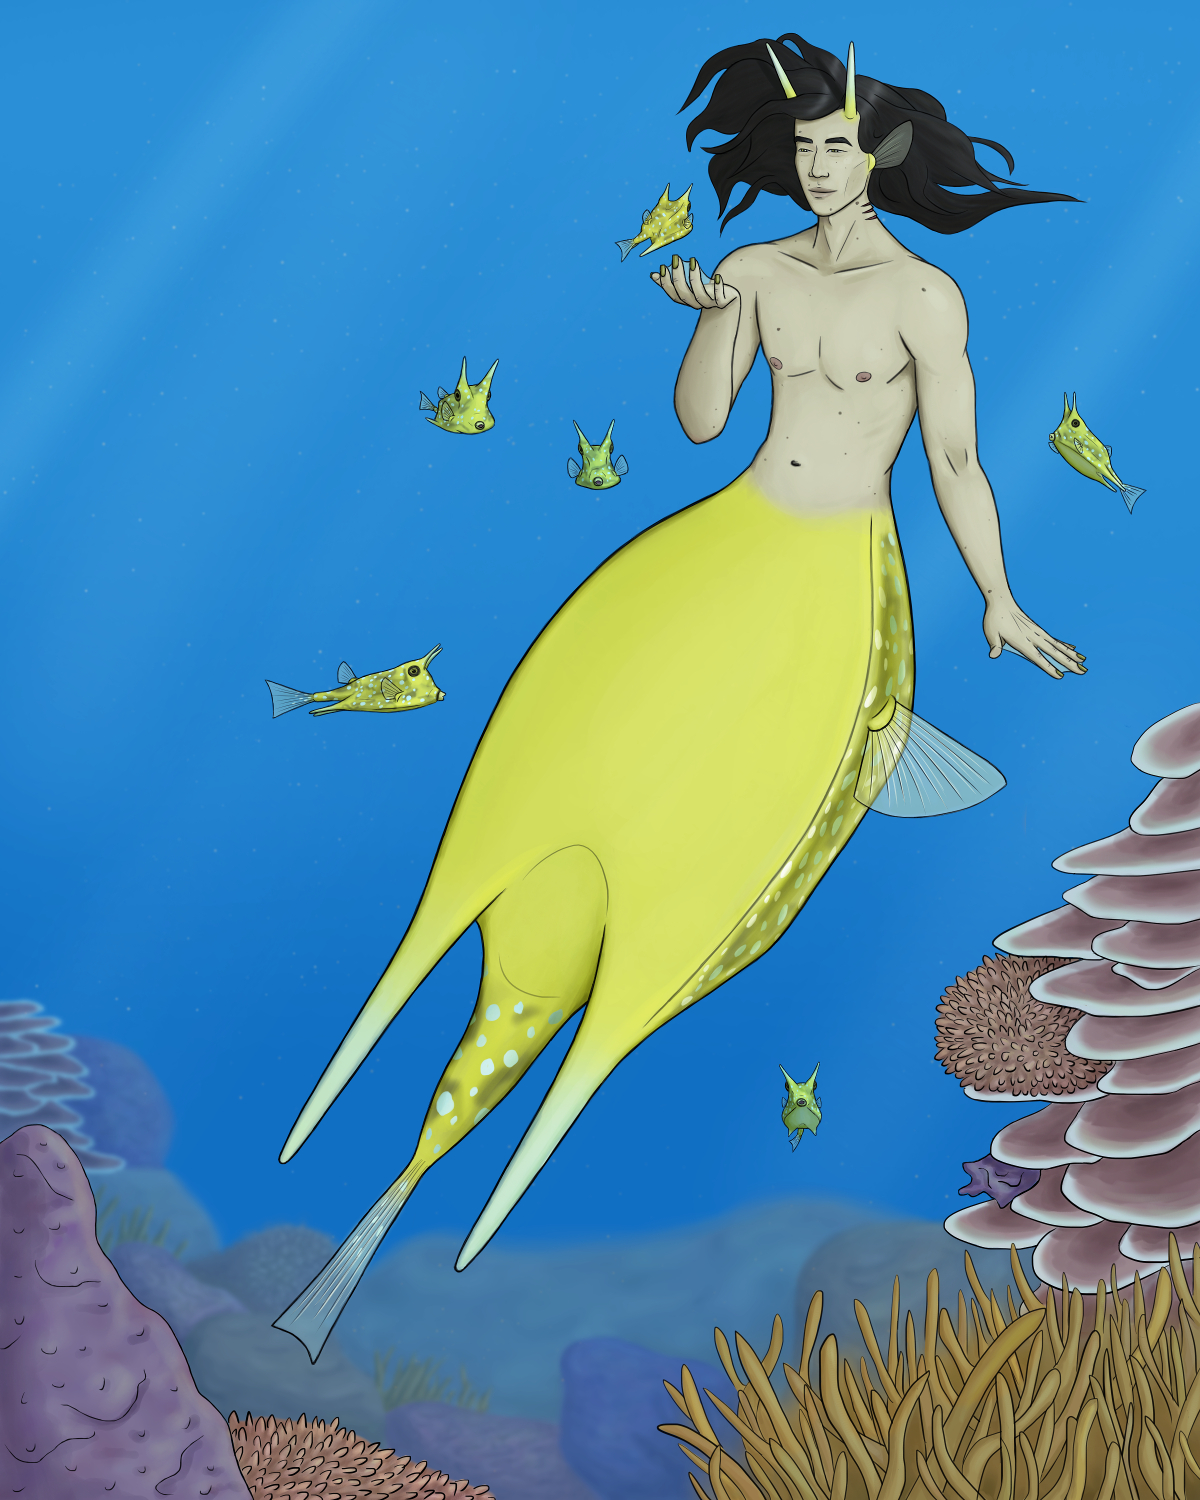 Digital painting of a longhorn cowfish merman at a coral reef, surrounded by a bunch of small cowfish swimming toward him. He's smiling and looking fondly at the one swimming toward his face, his hand coming up to touch it. He has a thin body and a bright yellow tail with a flat expanse that tapers to two horn-like protrusions at the bottom, with a tail fin in between them (like a cowfish). The side and fin of his tail have white spots. His head has two small, straight, yellow horns near his temples. He has fair skin, long black hair flowing around his face, some scattered freckles and moles, and Japanese facial features.